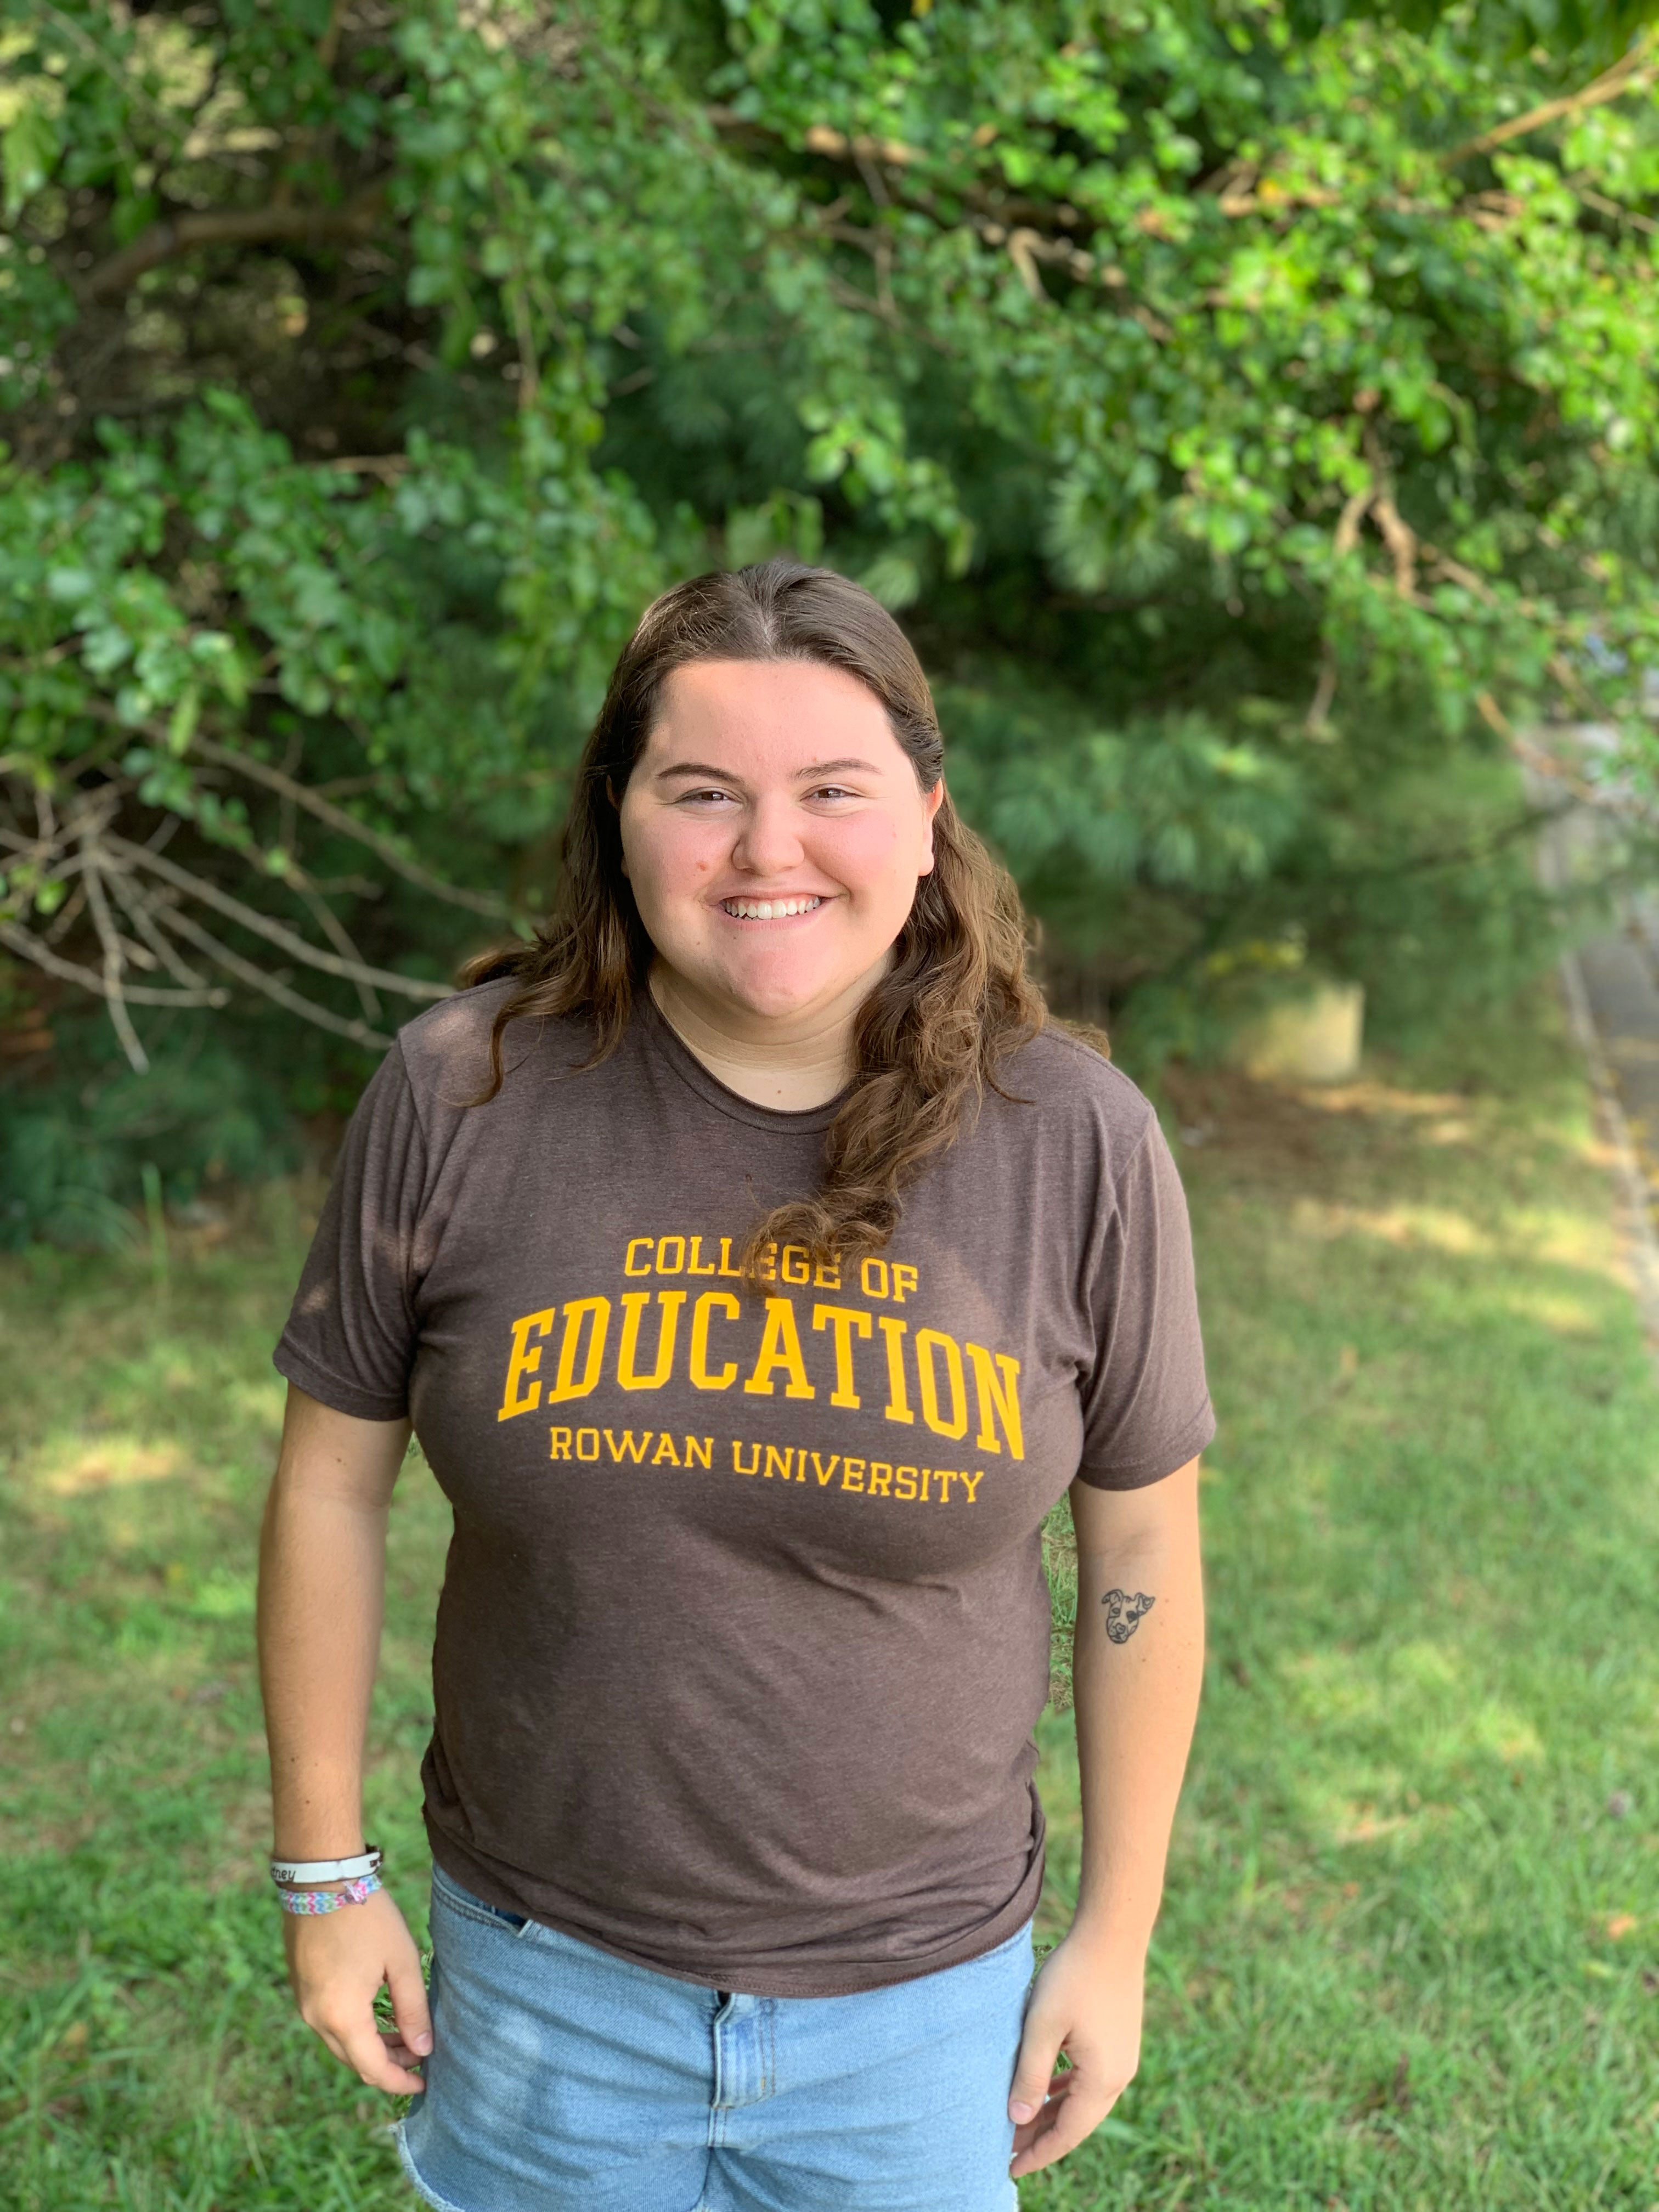 Courtney Morrone, an Early Childhood Education major